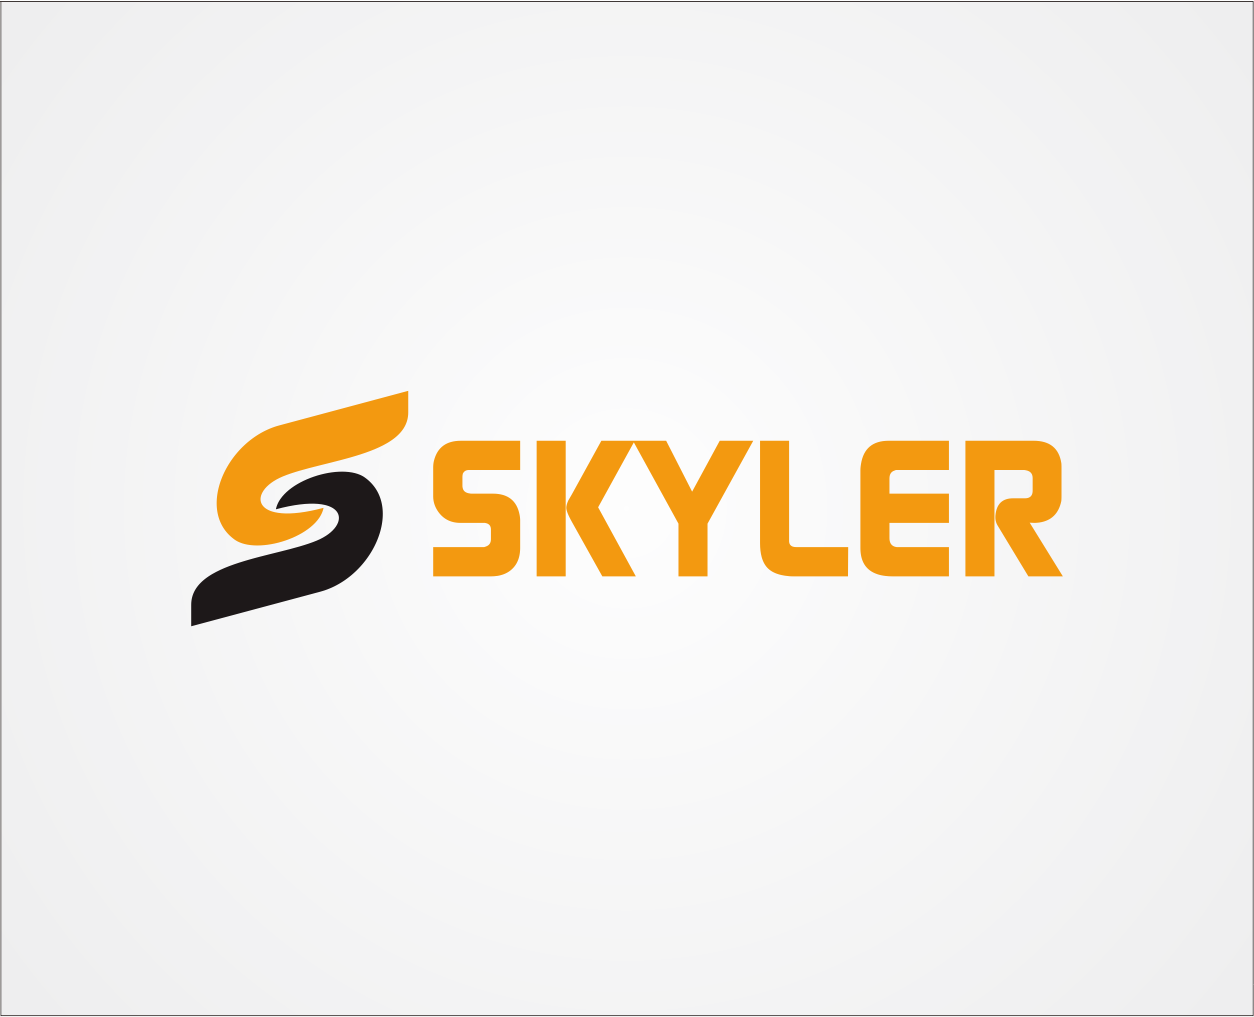 Logo Design by Armada Jamaluddin - Entry No. 162 in the Logo Design Contest Artistic Logo Design for Skyler.Asia.